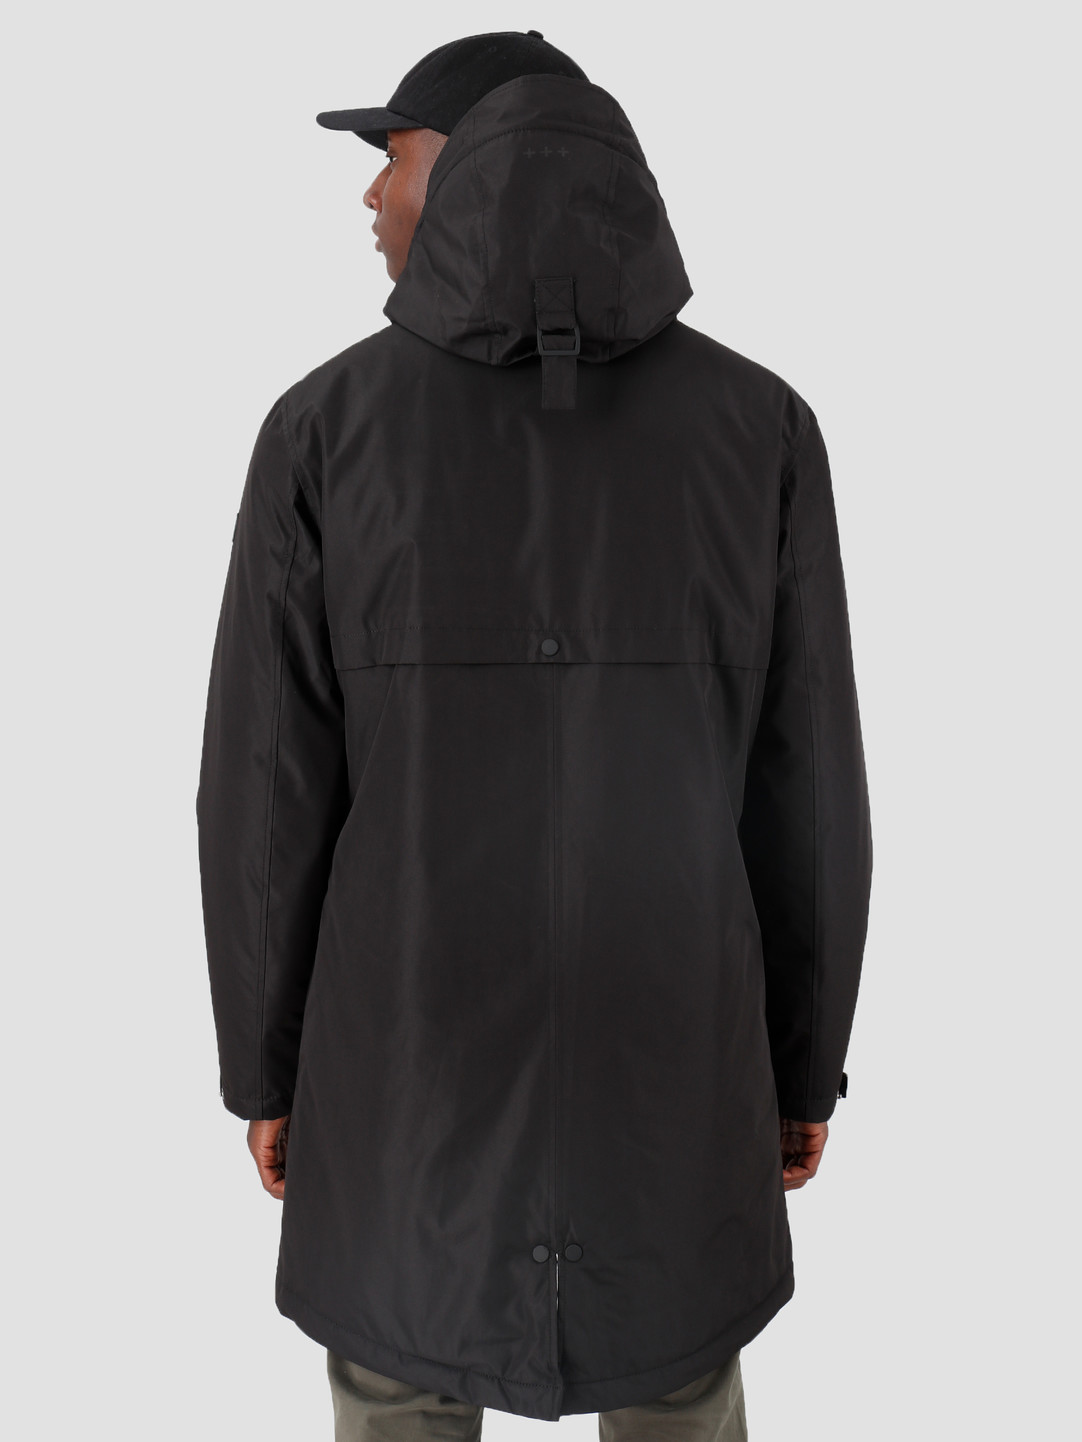 Quality Blanks Quality Blanks QB25 Technical Parka Black